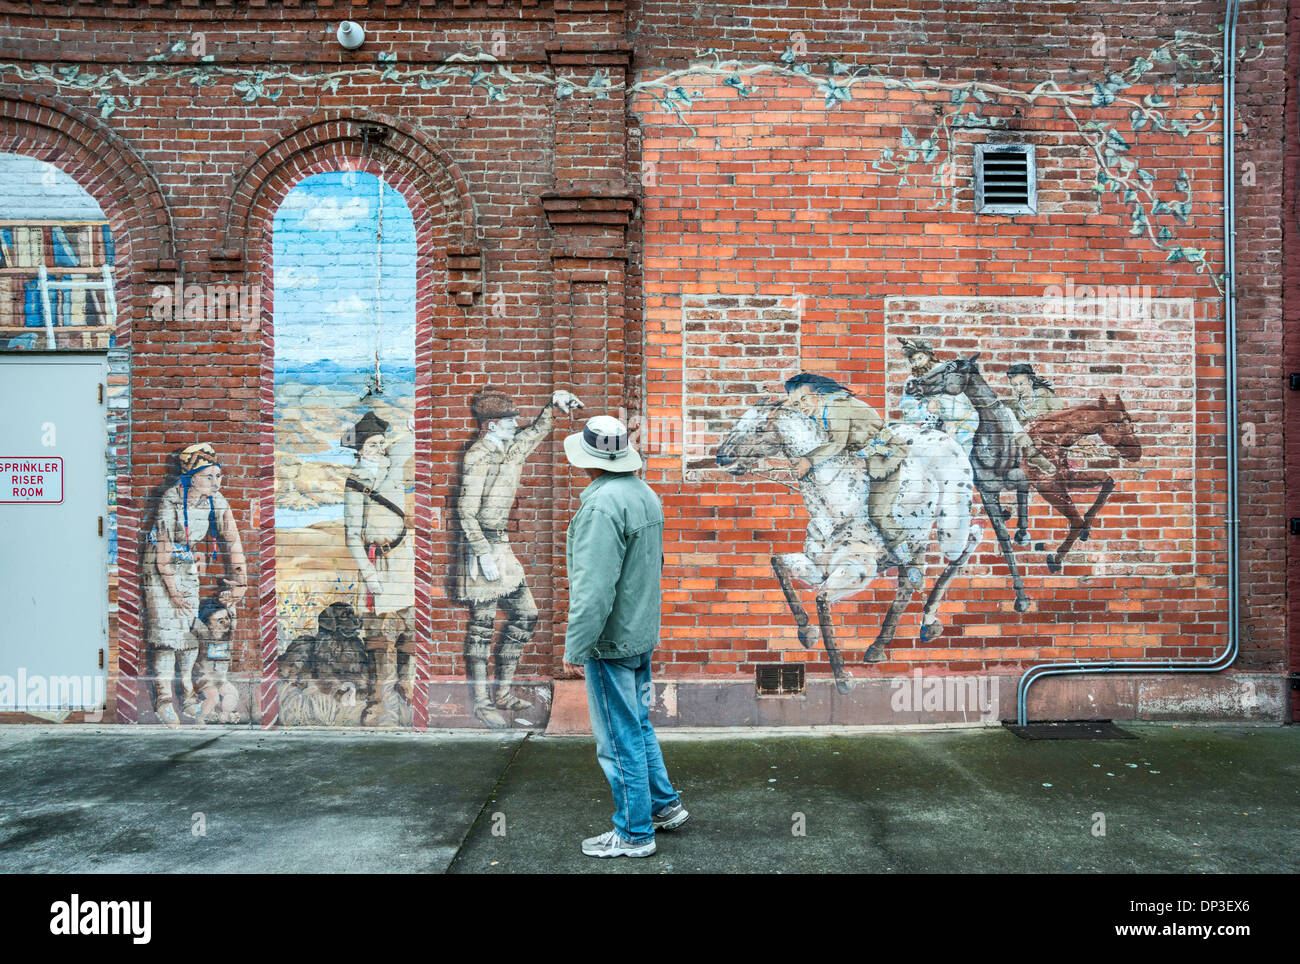 Passerby at mural at LCSC Center for Arts and History on D Street in downtown business district of Lewiston, Idaho, USA - Stock Image